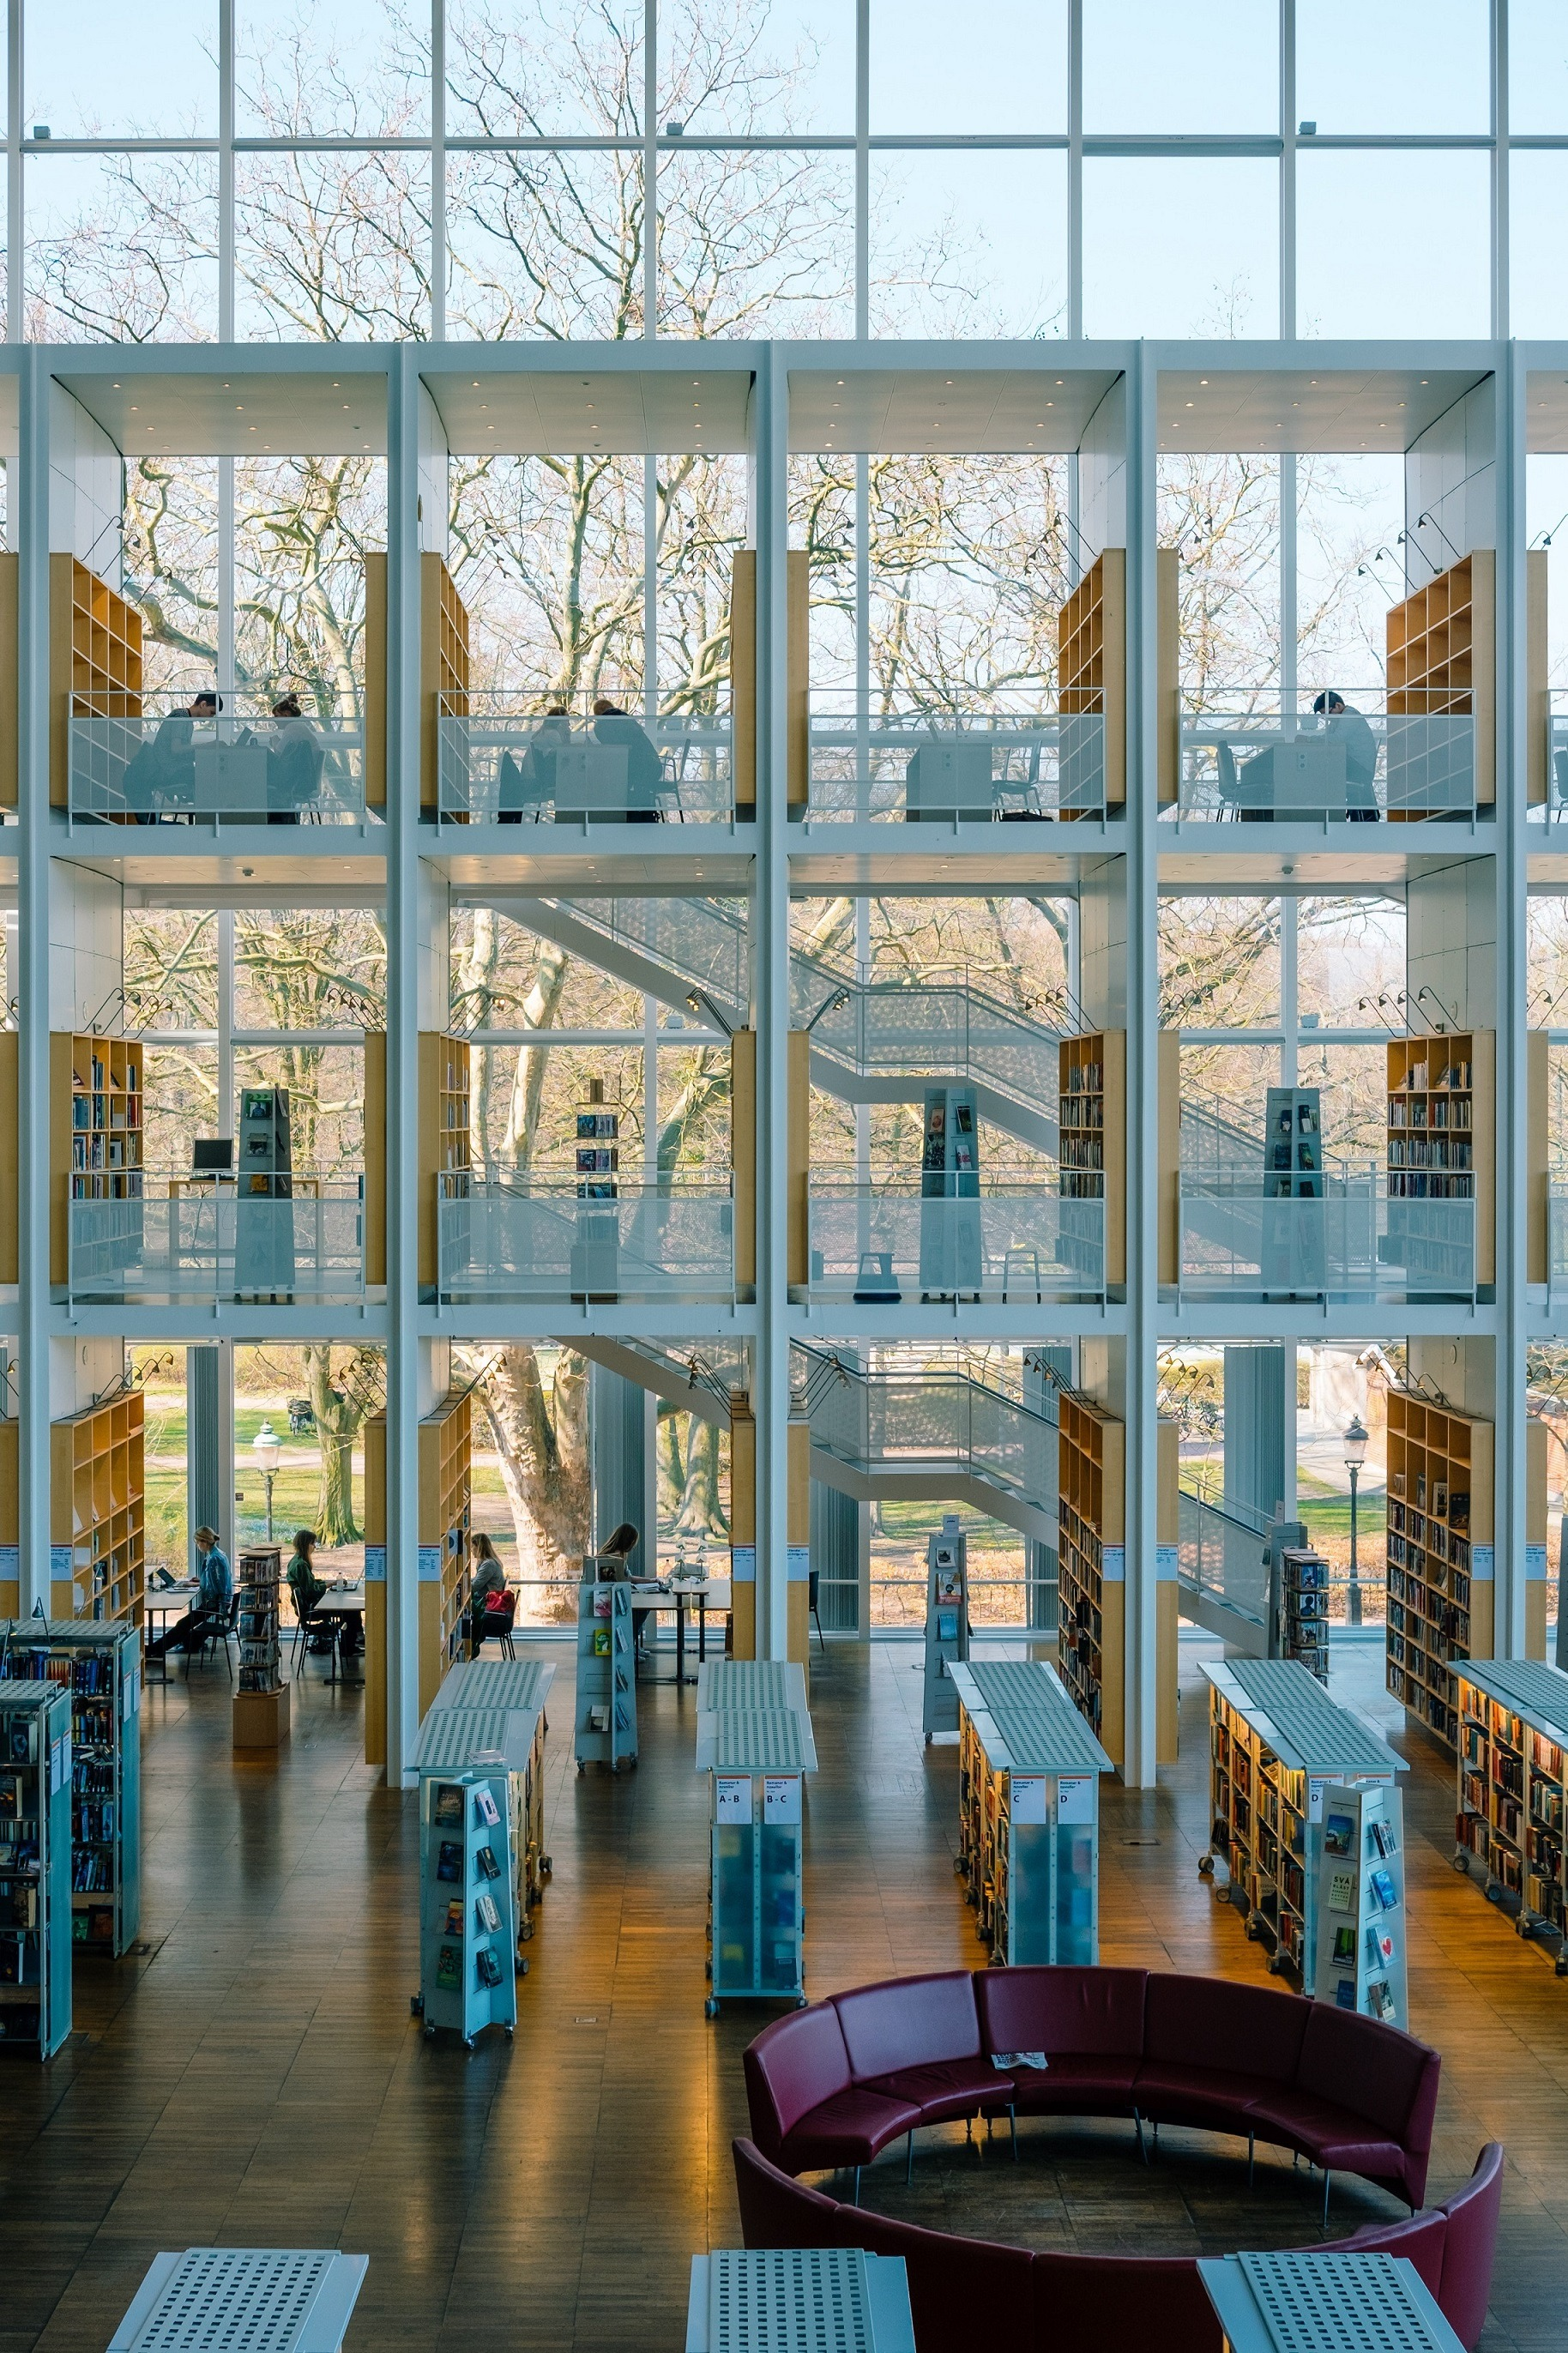 Photo of the interior of a modern library.